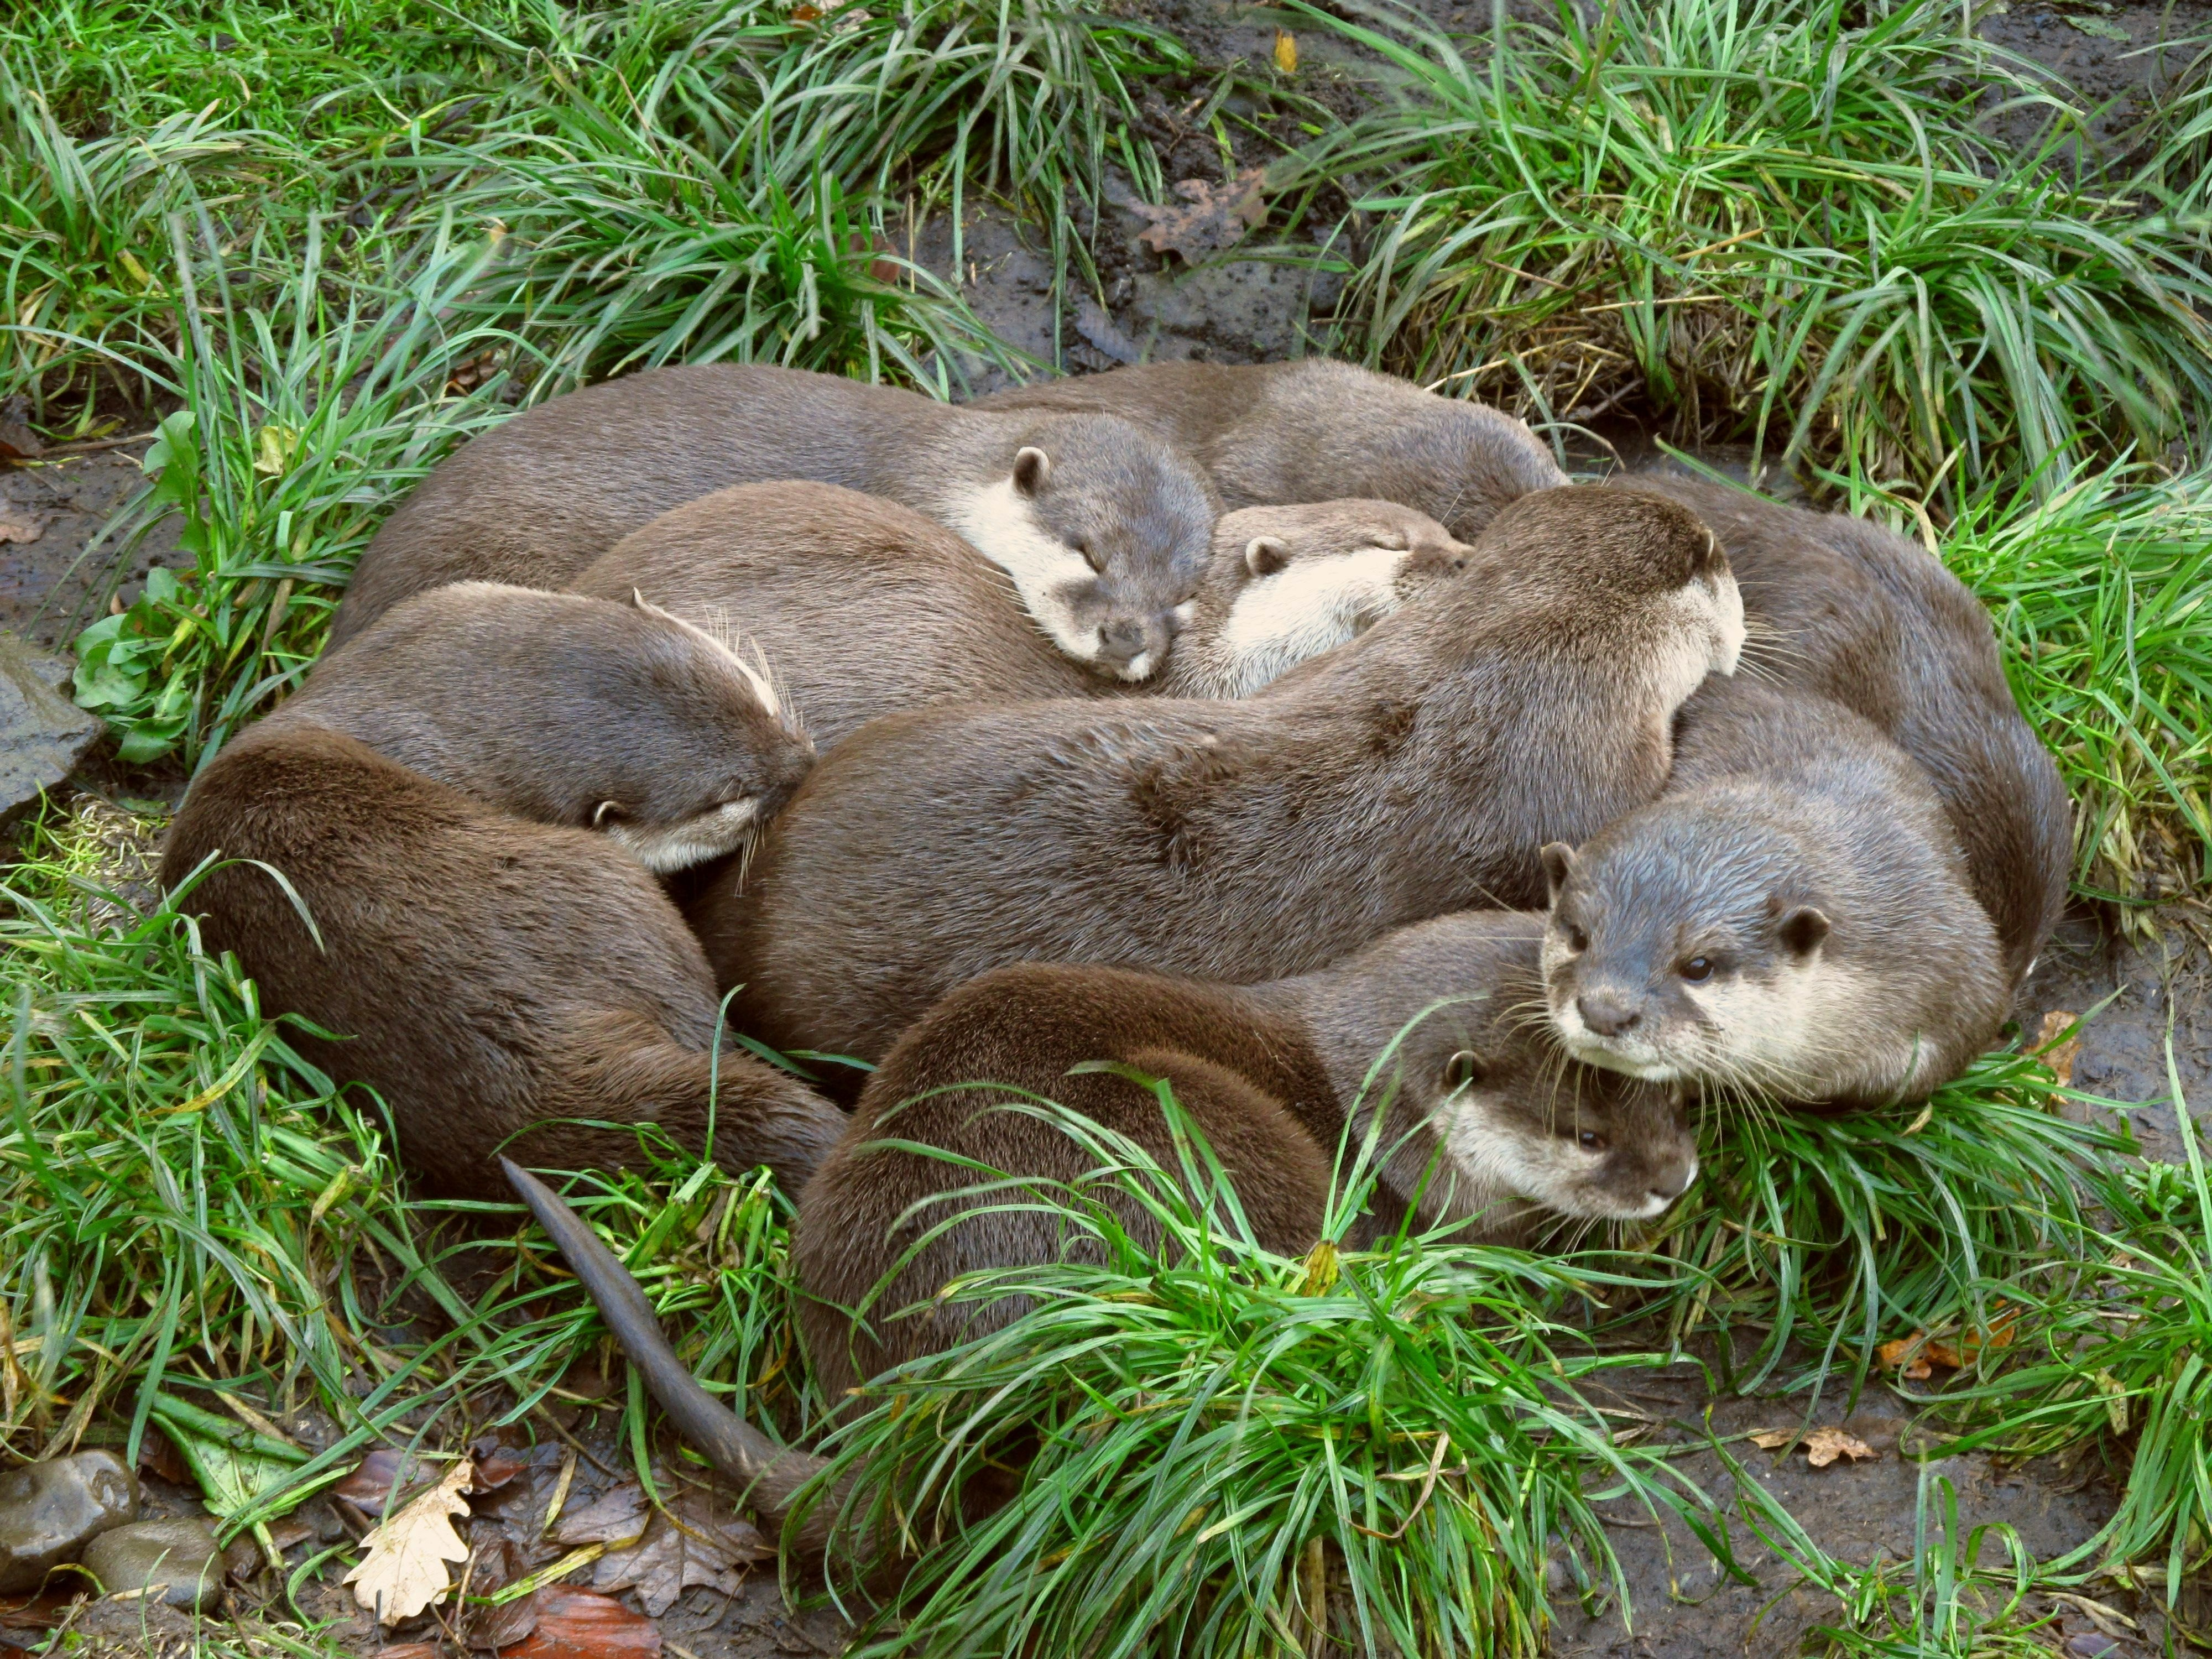 """""""Besides romping around, smooth-coated otters are known to engage in """"group rubbings"""" partly to clean their furry coats and also to strengthen family bonds."""" © 123rf.com"""